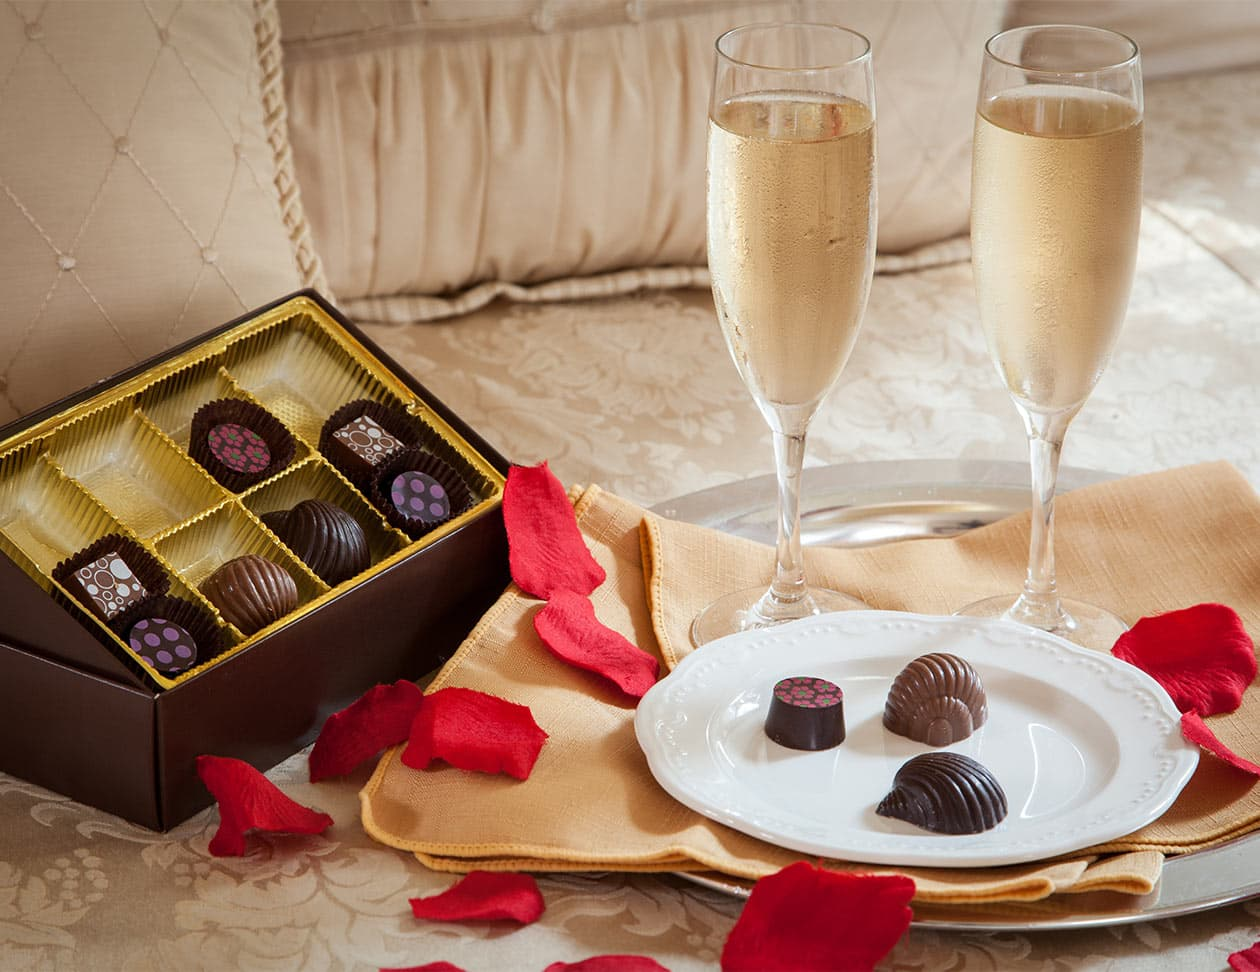 box of chocolates and 2 flutes filled with champagne